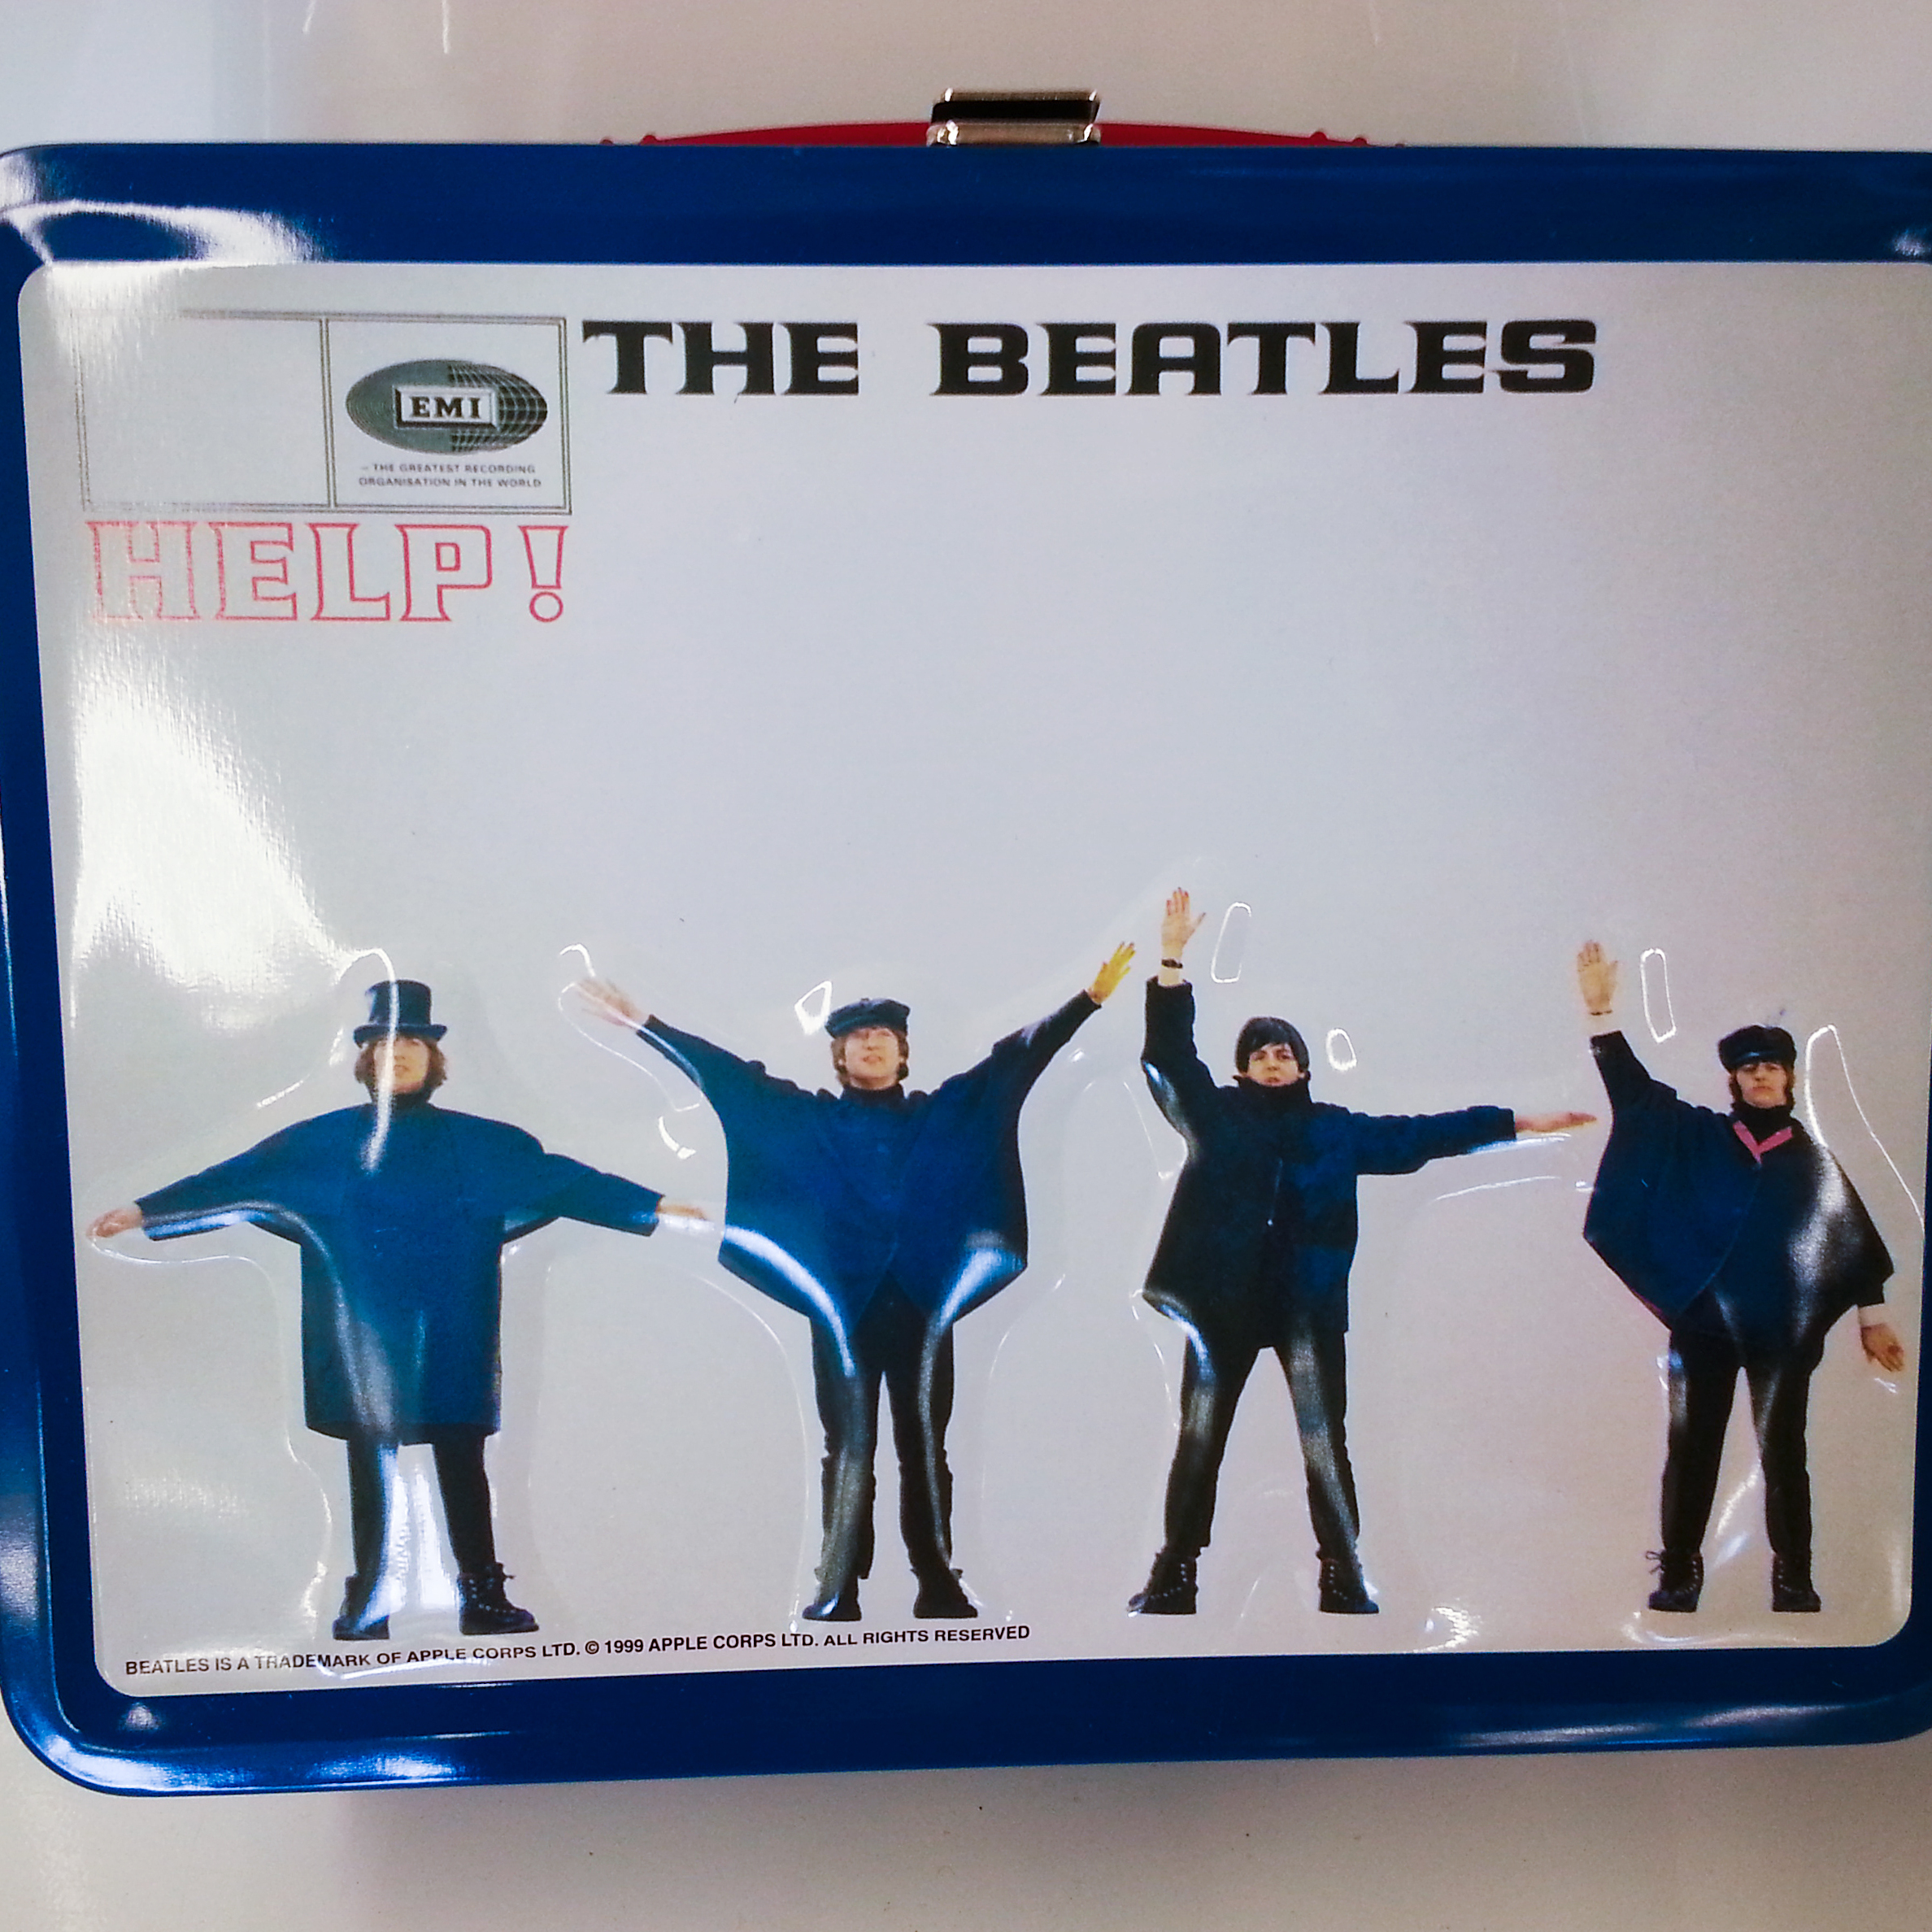 While an original Beatles lunchbox will cost you hundreds of dollars, fans can pick up a version made in the '90s or later in the $10-$25 range. Here's one based on the 1965 album Help! It's being sold on eBay as part of a set of 13 lunchboxes, each based on a different Beatles album cover.